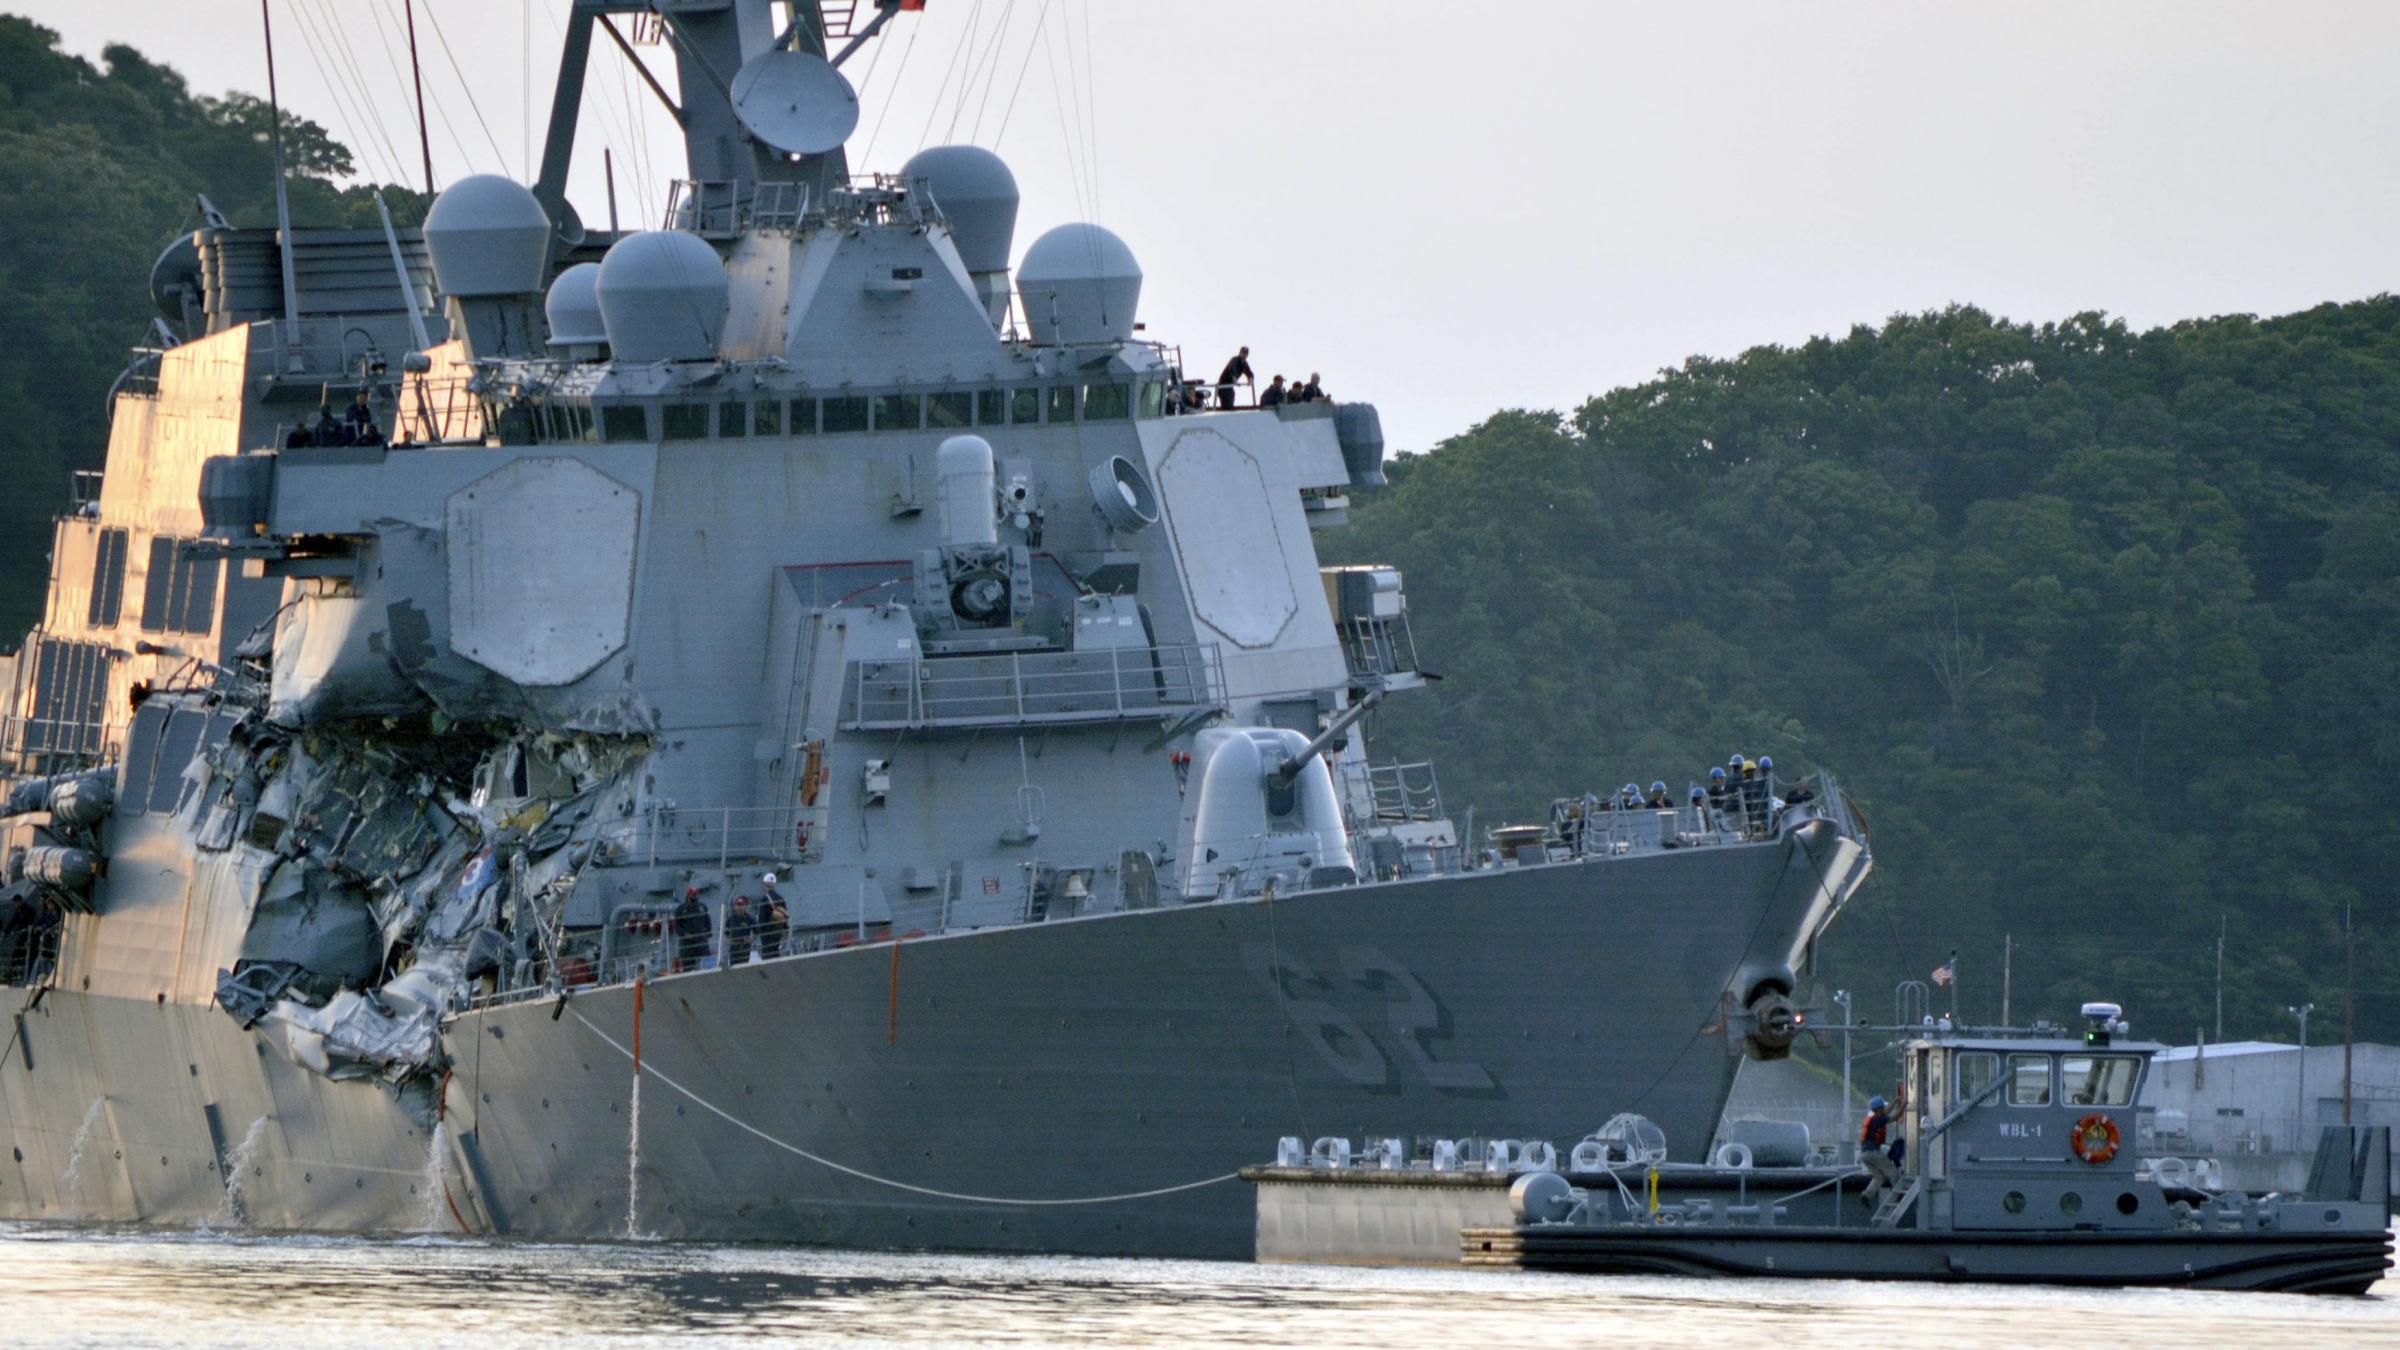 The missing sailors from the United States  destroyer found dead